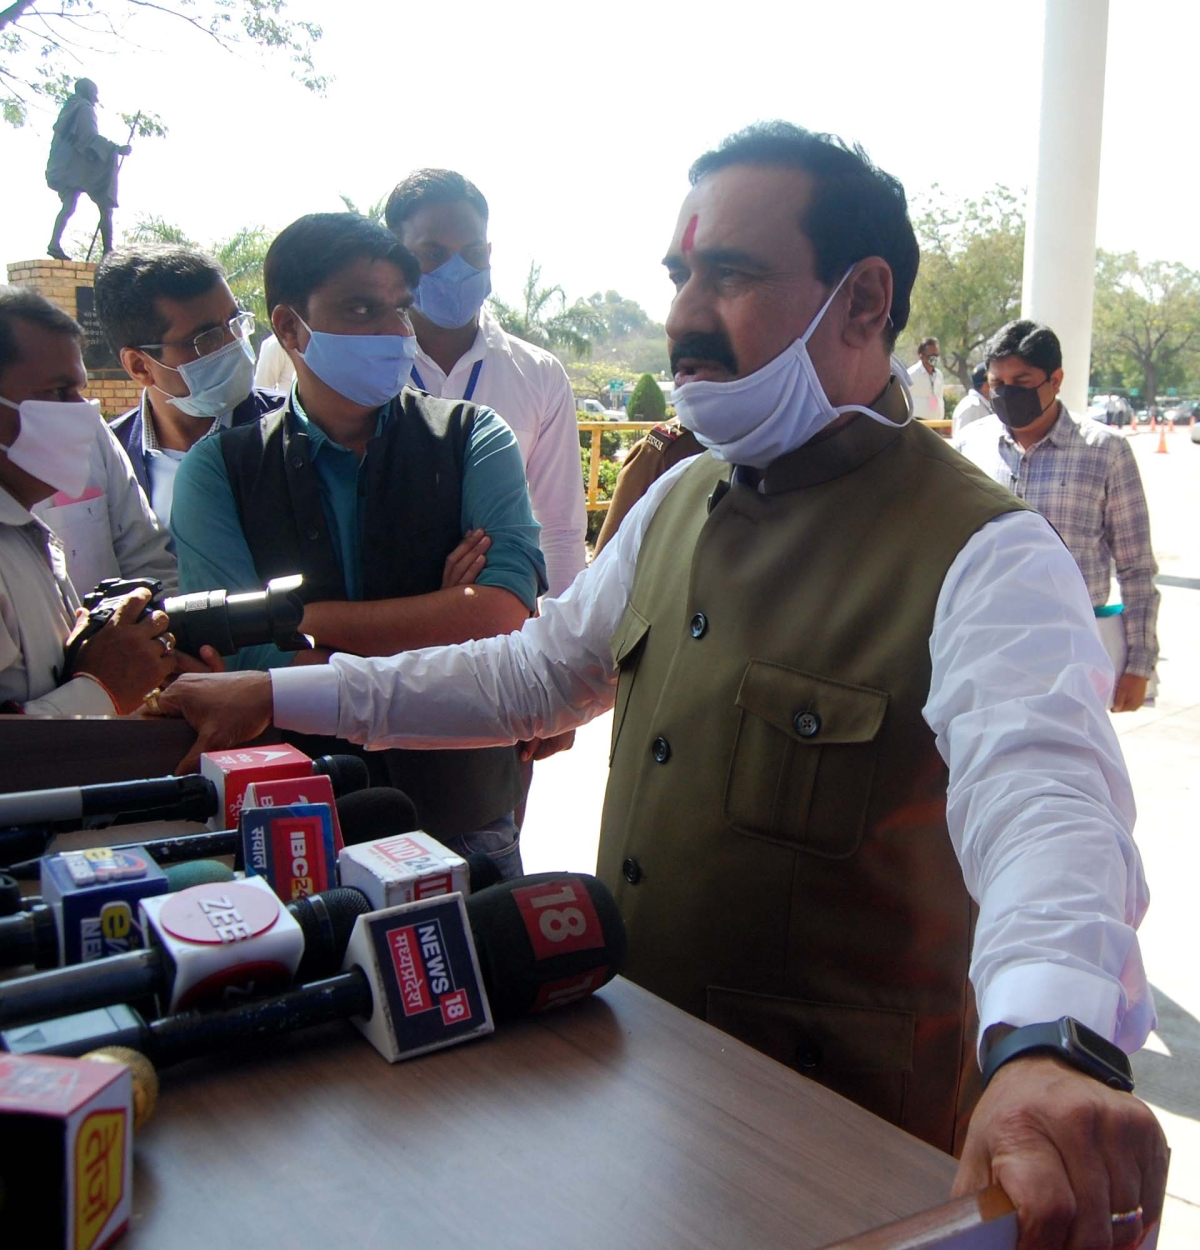 Madhya Pradesh: Home Minister Narottam Mishra, MLA Lakhan Singh Yadav level allegations against each other over mining in Bhitarwar area of Gwalior